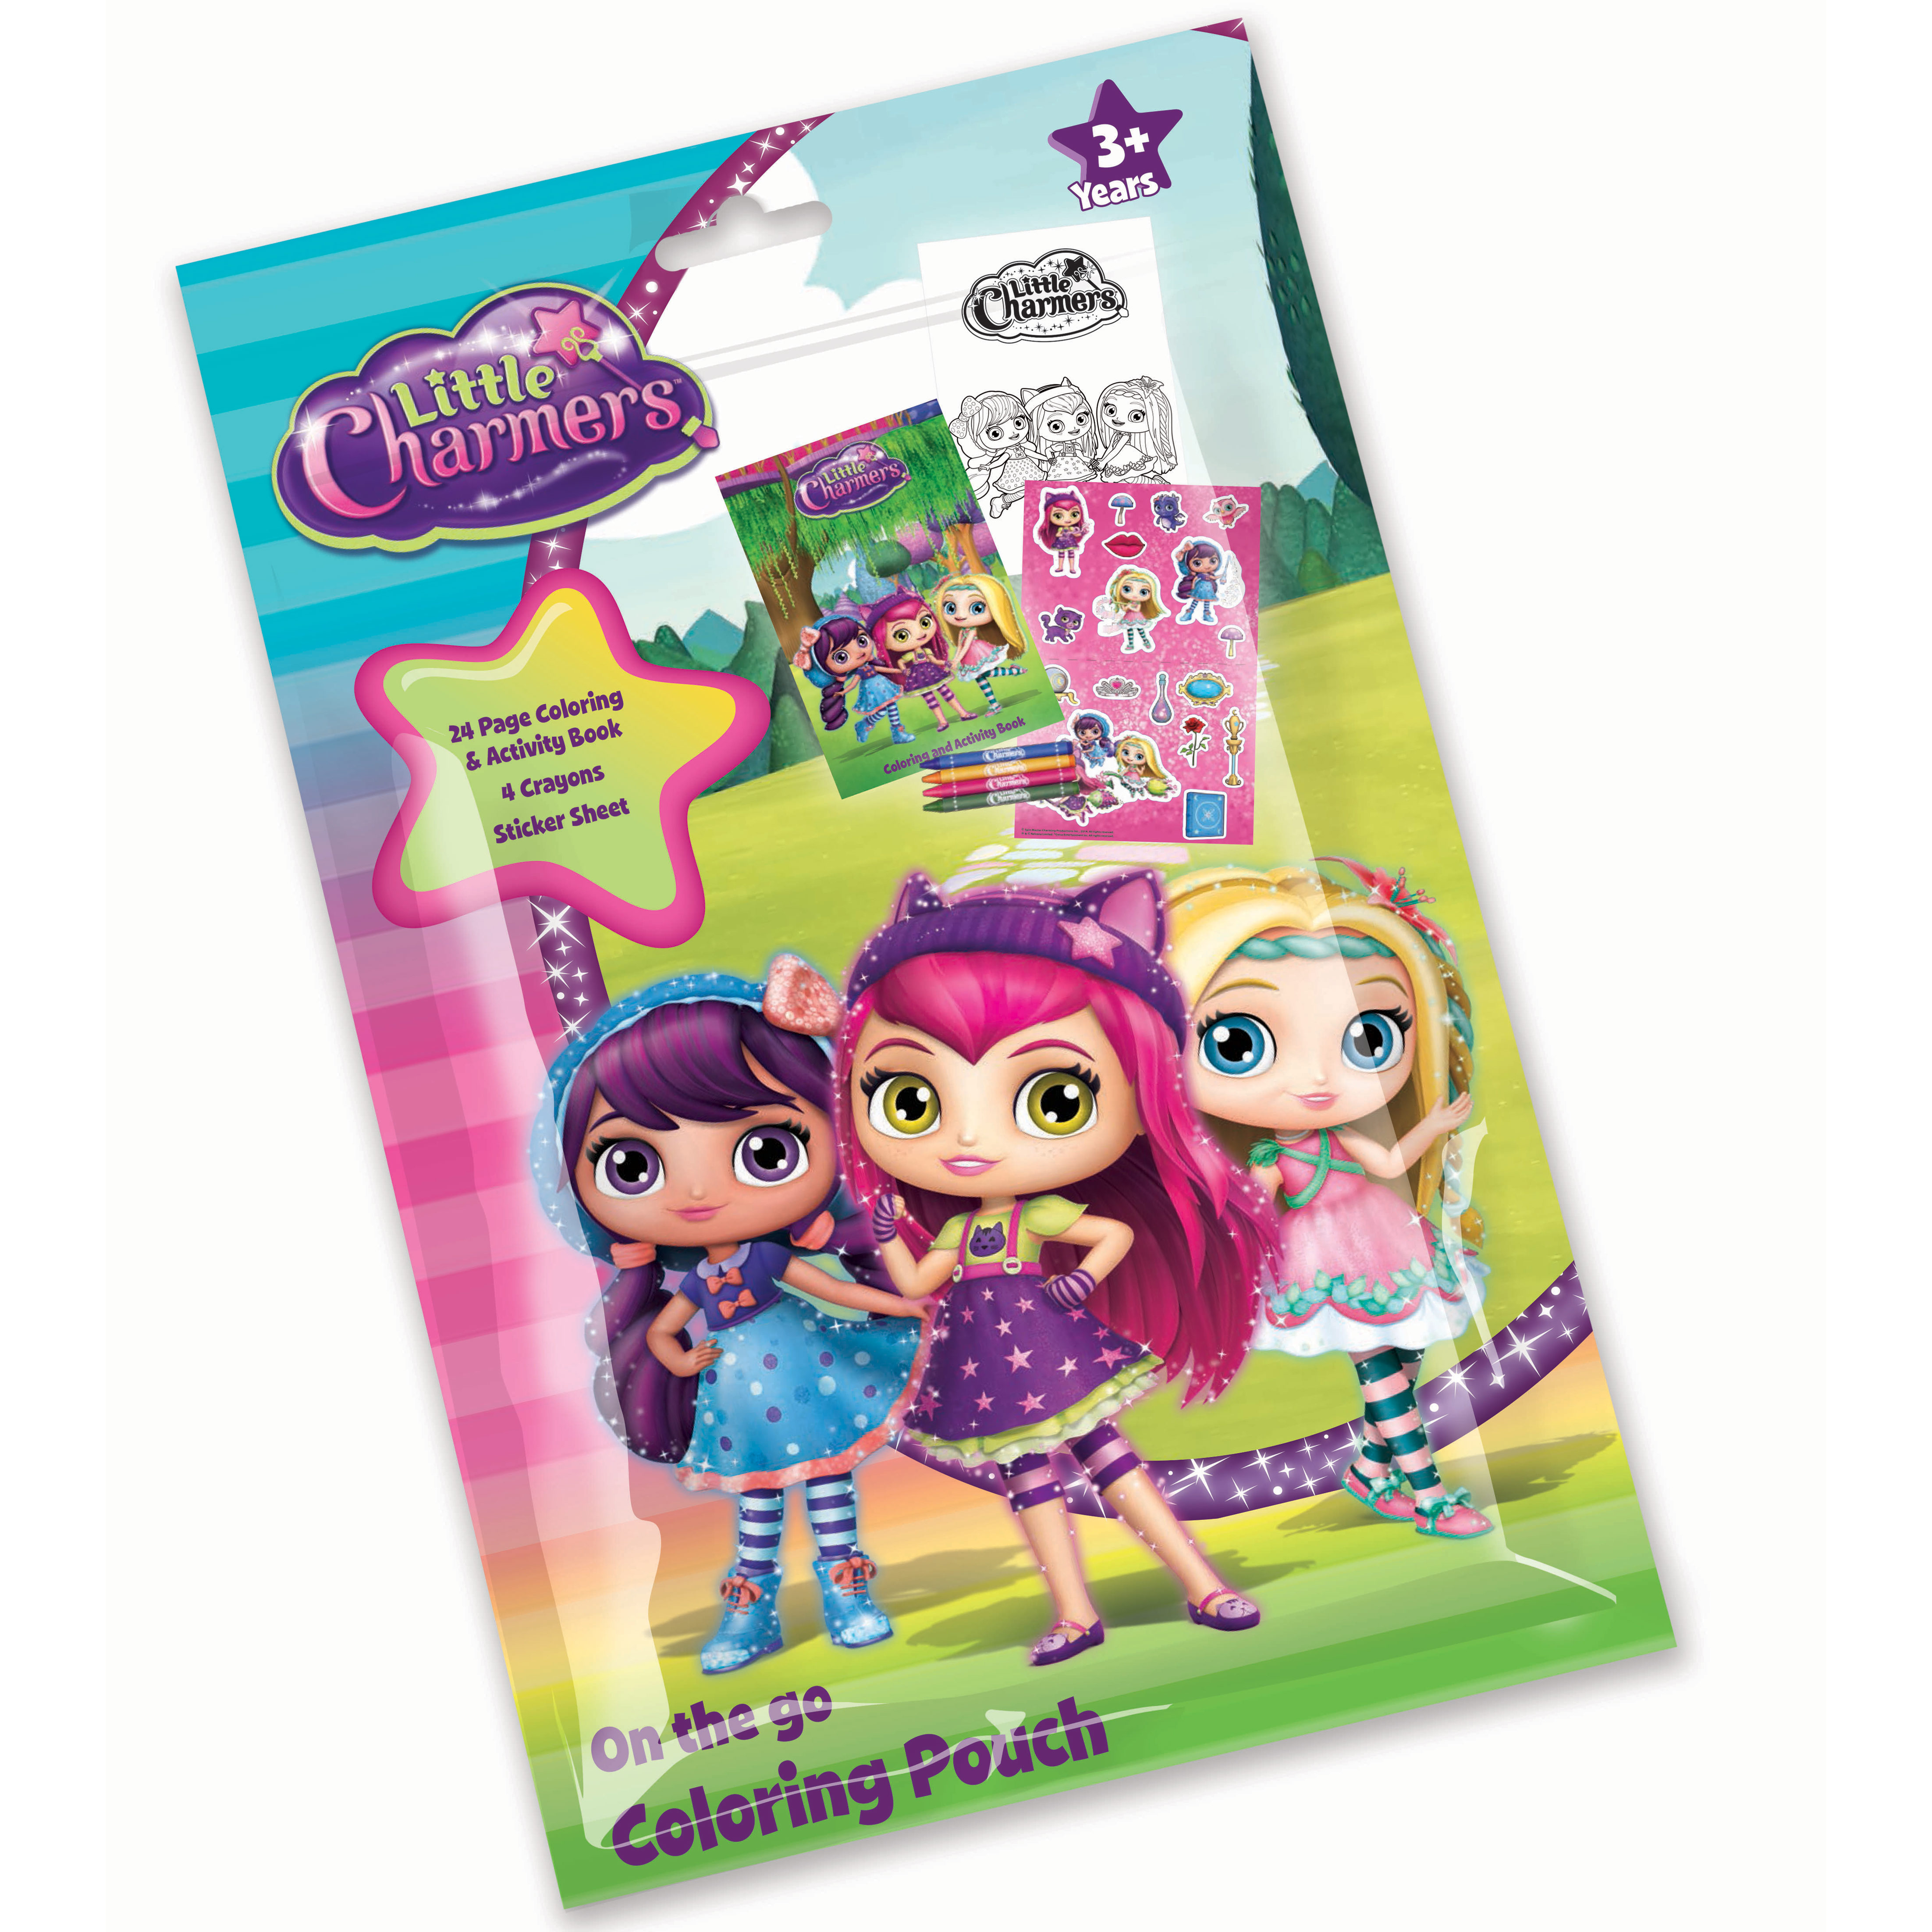 Little Charmers Coloring Pouch Favor (Each) - Party Supplies